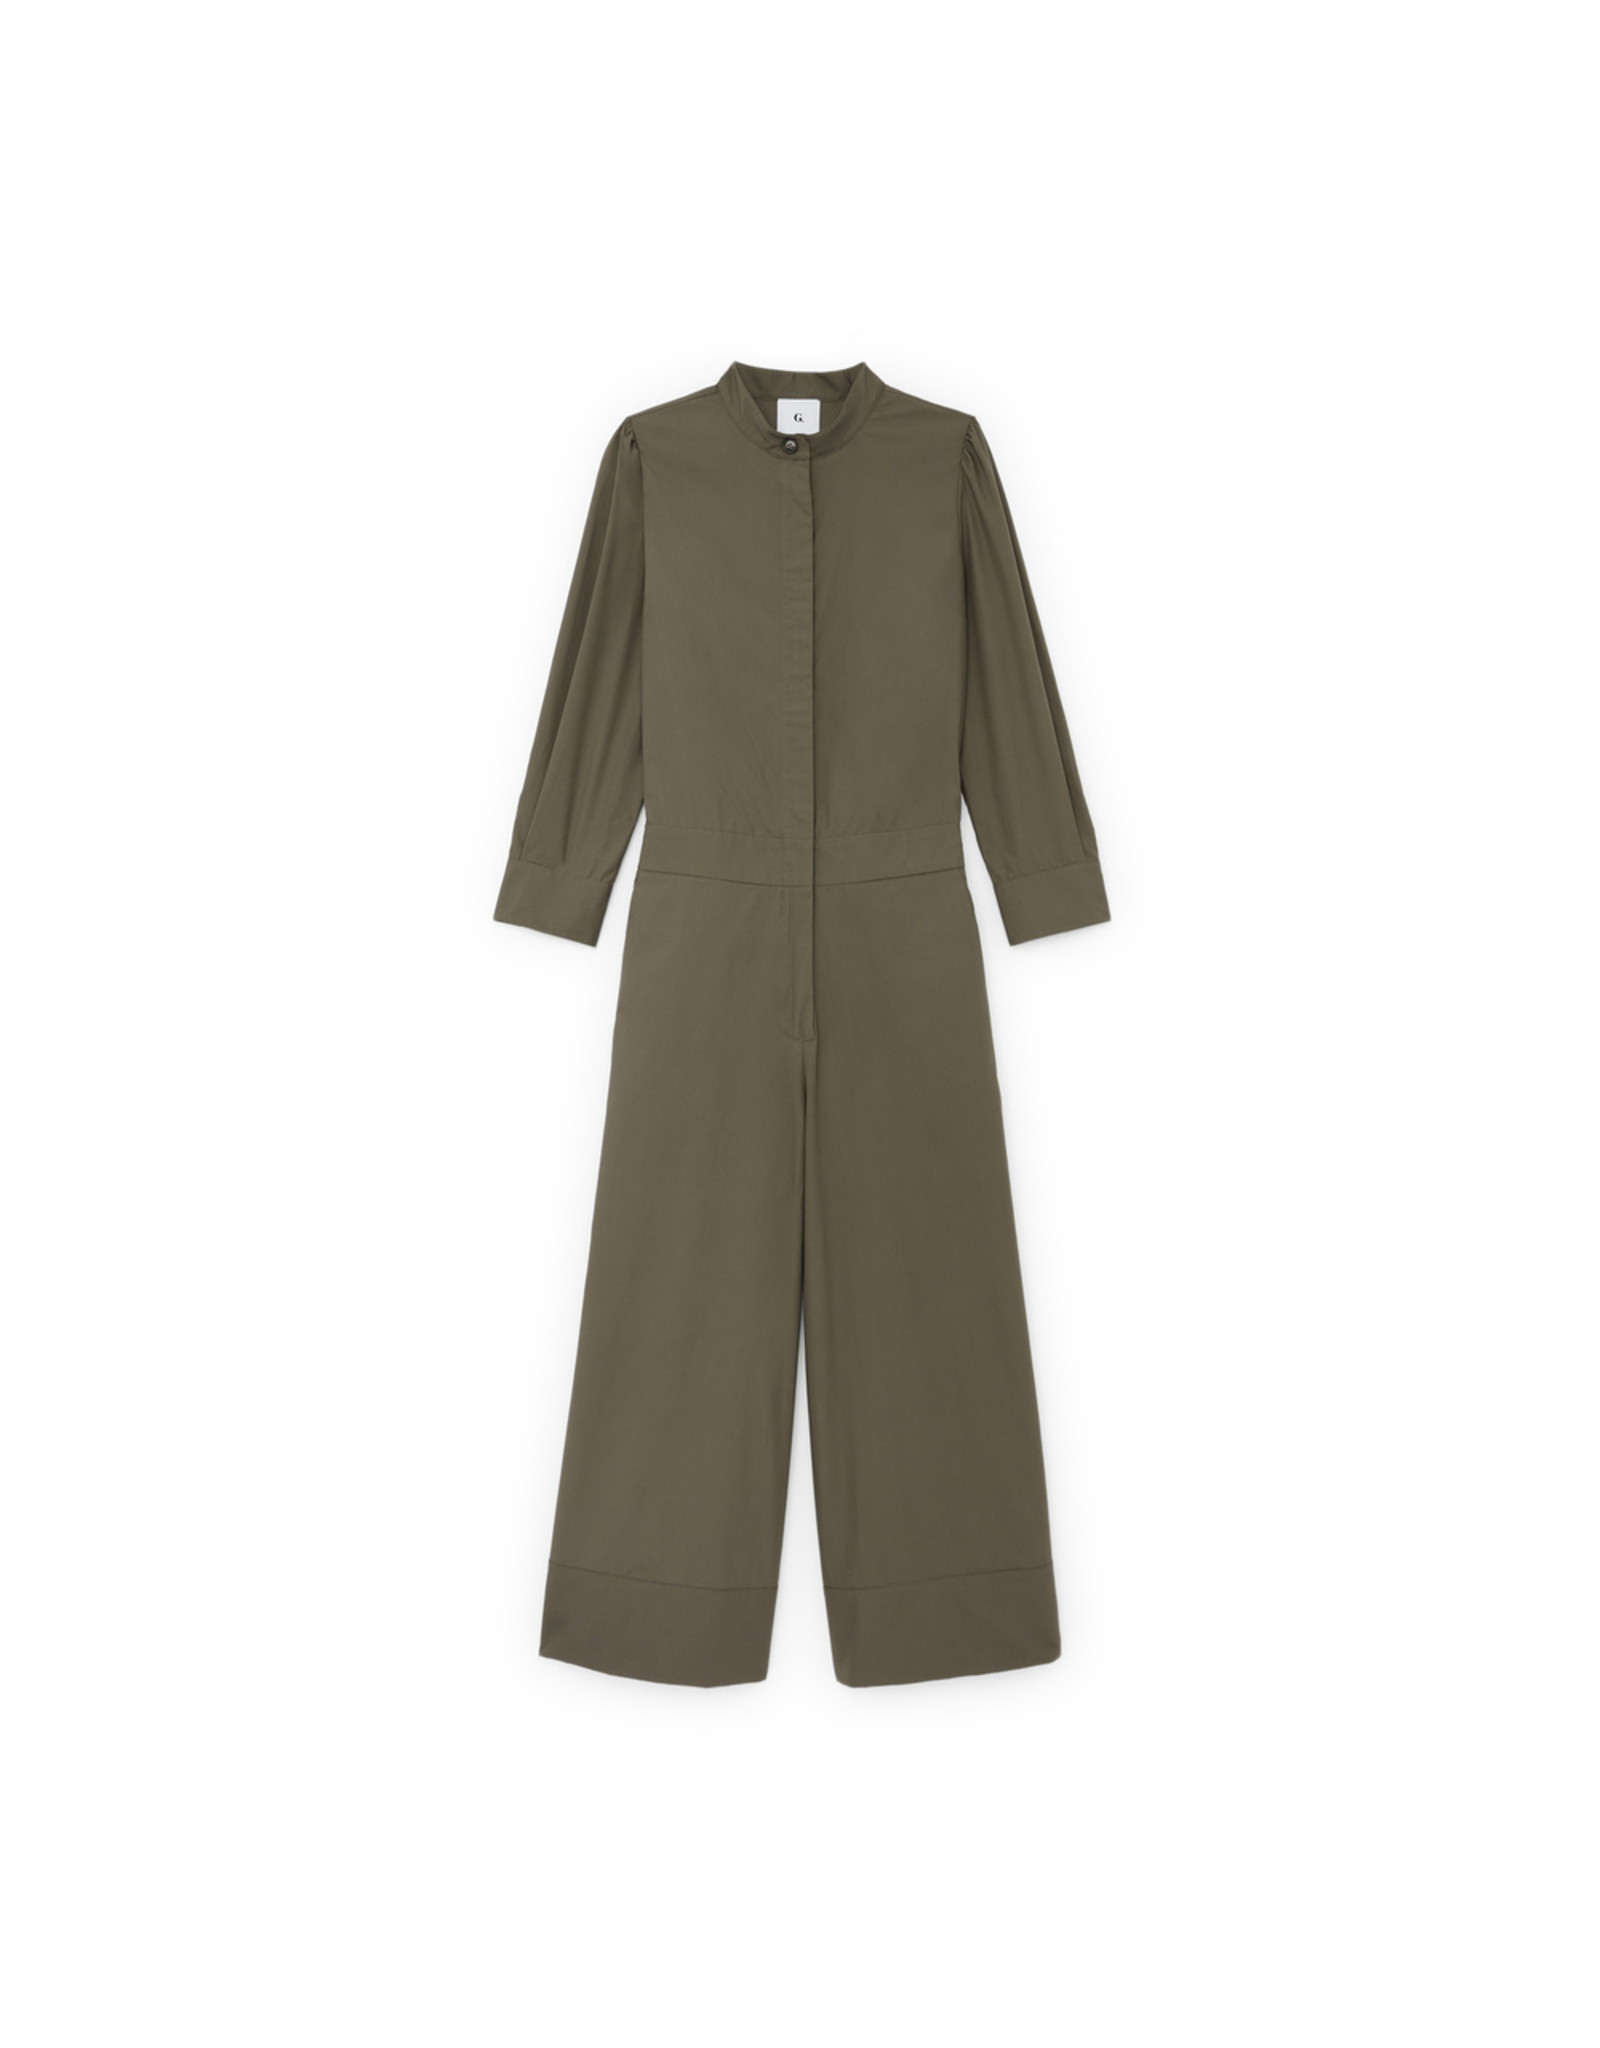 G. Label G. Label Blair Jumpsuit (Color: Army Green, Size: 8)